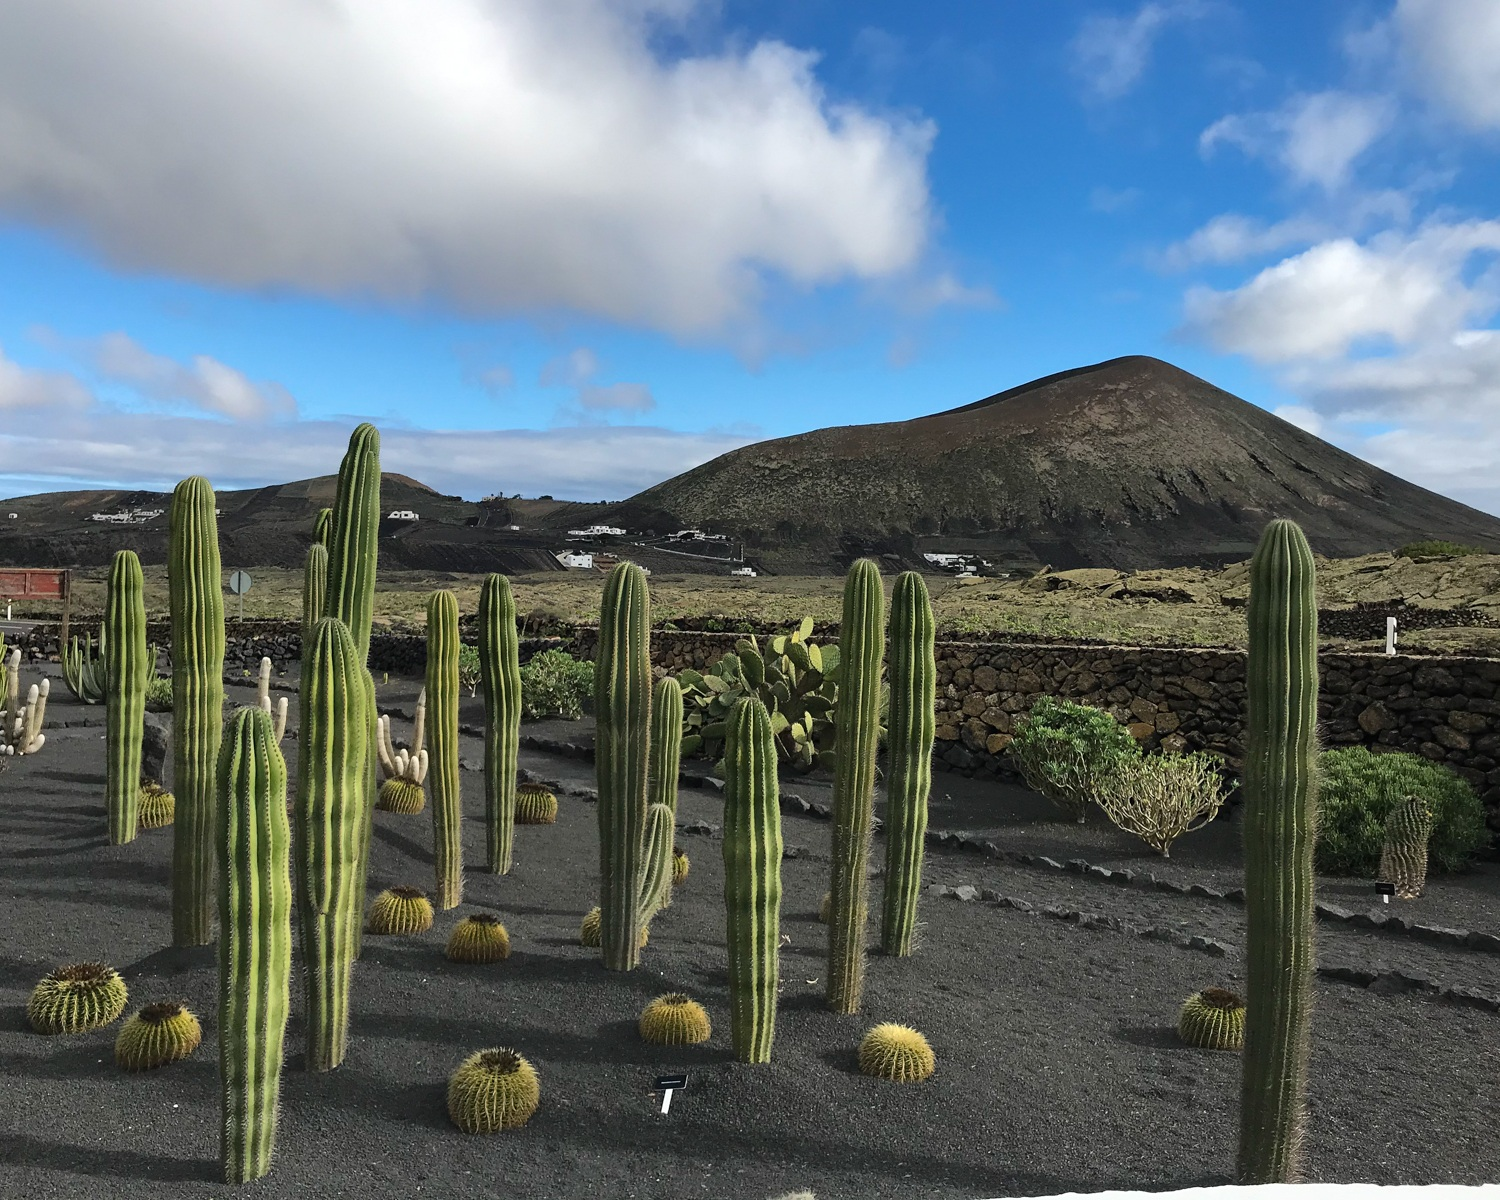 Things to do in Lanzarote - take a wine tour